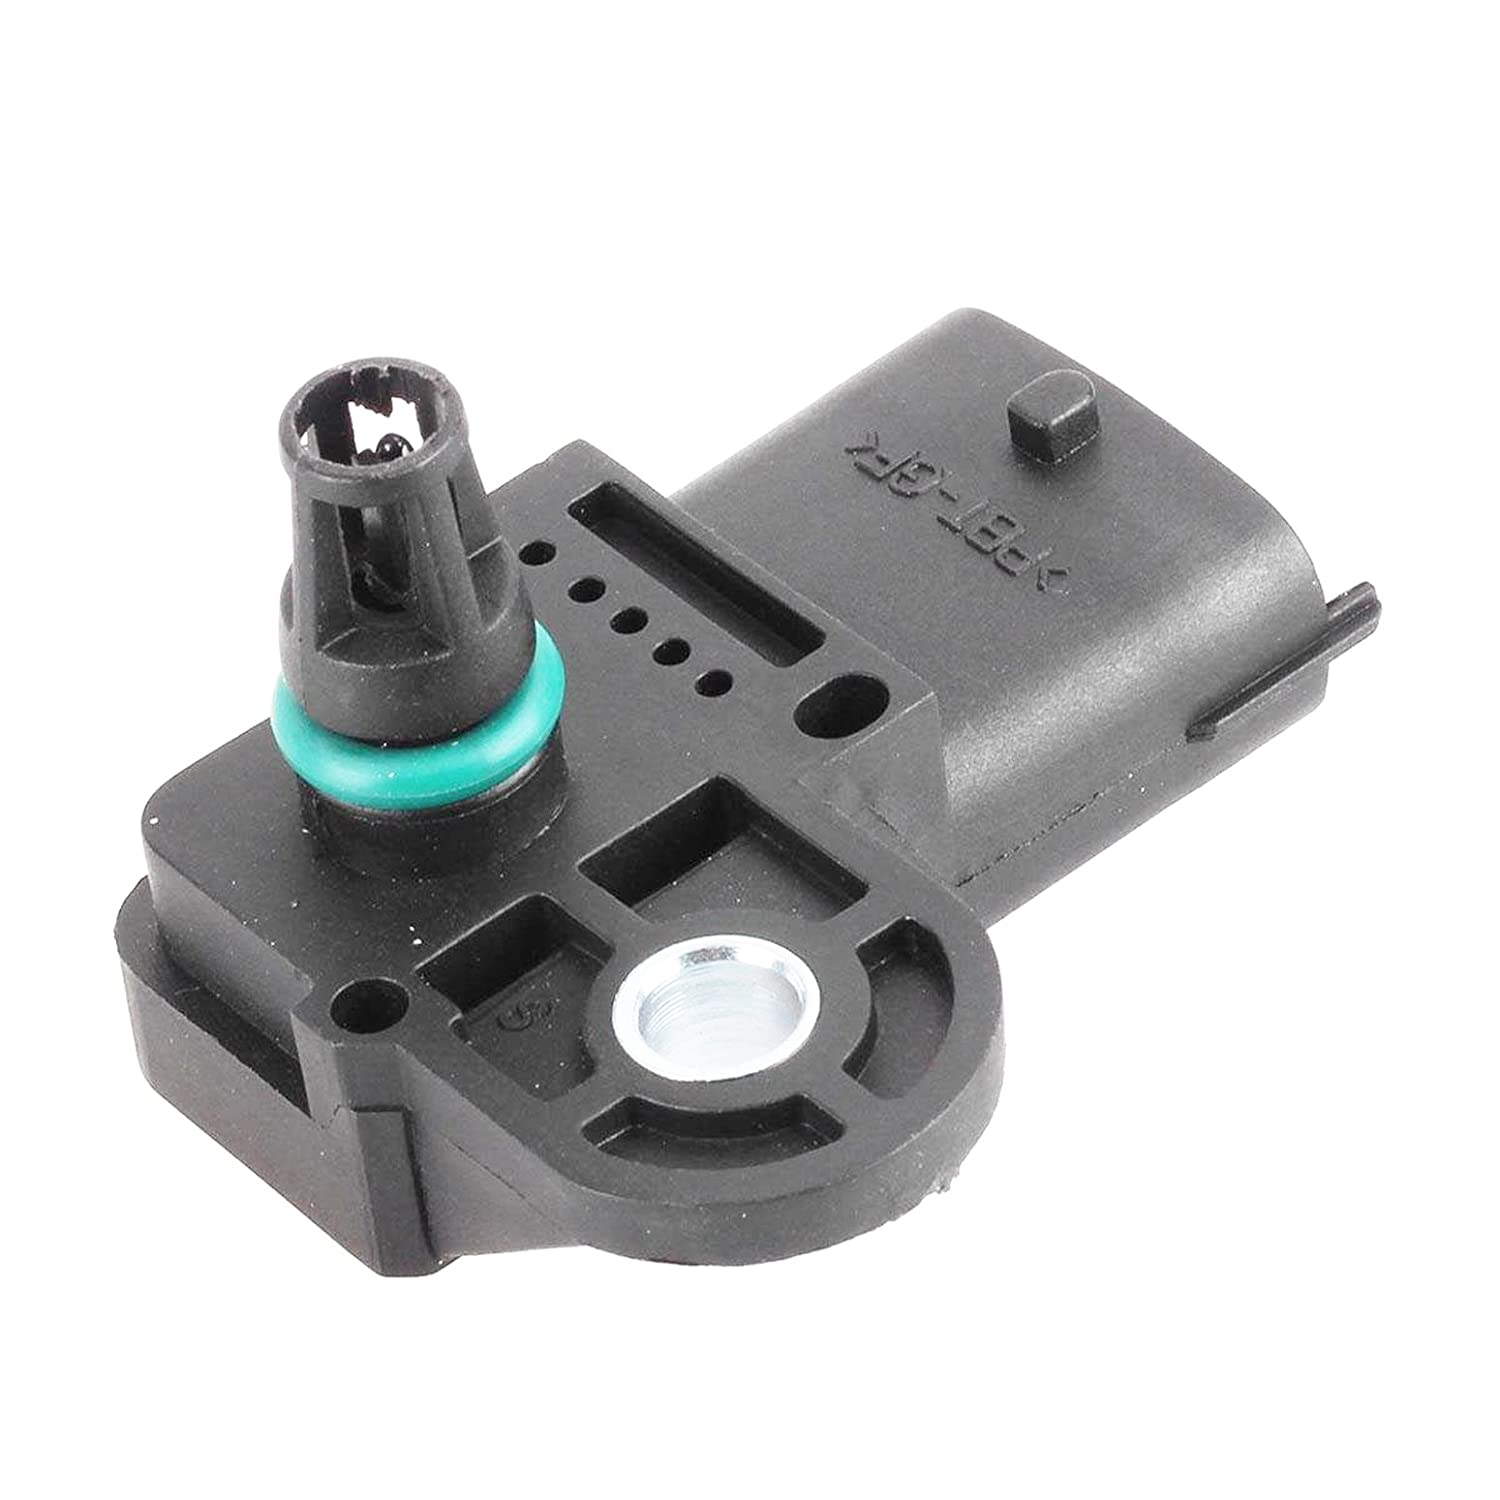 F6TZ-9F838-A Injection Control Pressure ICP Sensor for Ford 7.3L Powerstroke Diesel 1994-2003 Replaces 1807329C92 F4TZ-9F838-A CM5227 112841